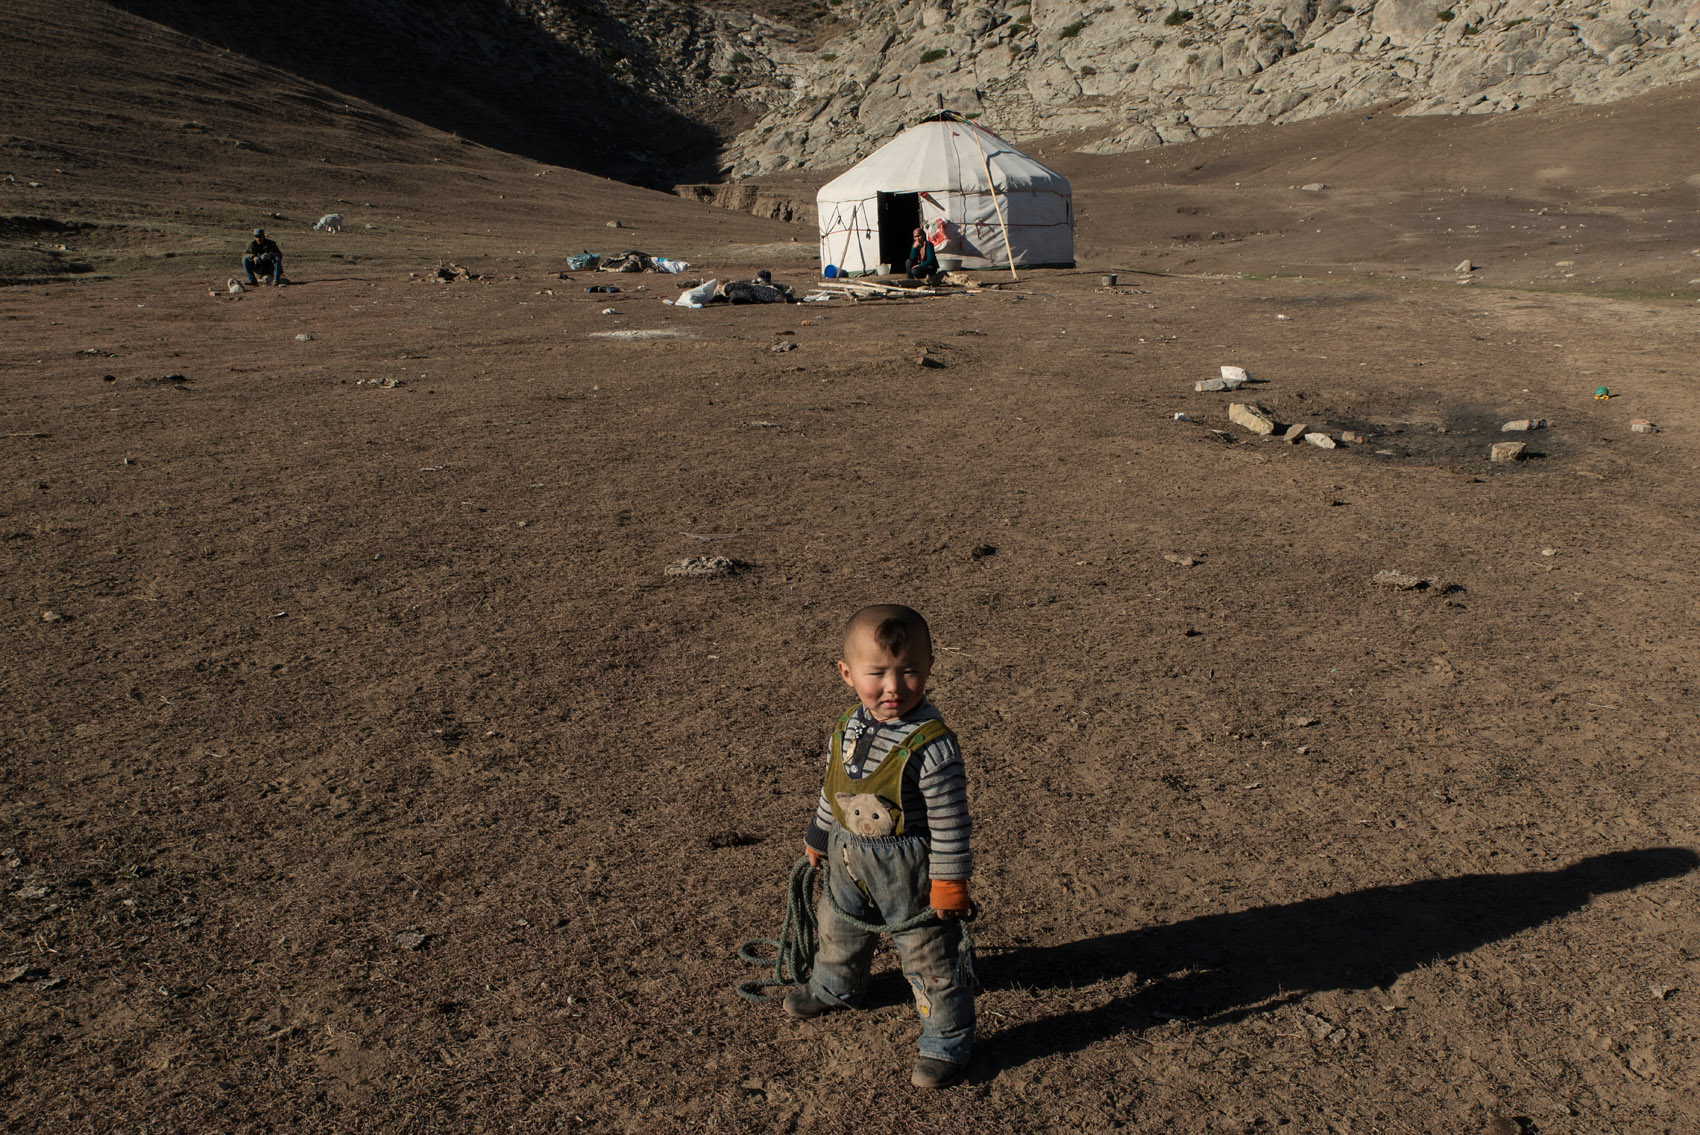 In the grassland of the Altai mountains, a young Kazakh nomad standing in front of the family yurt where both his parents stand, during the yearly migration from summer to winter pastures.